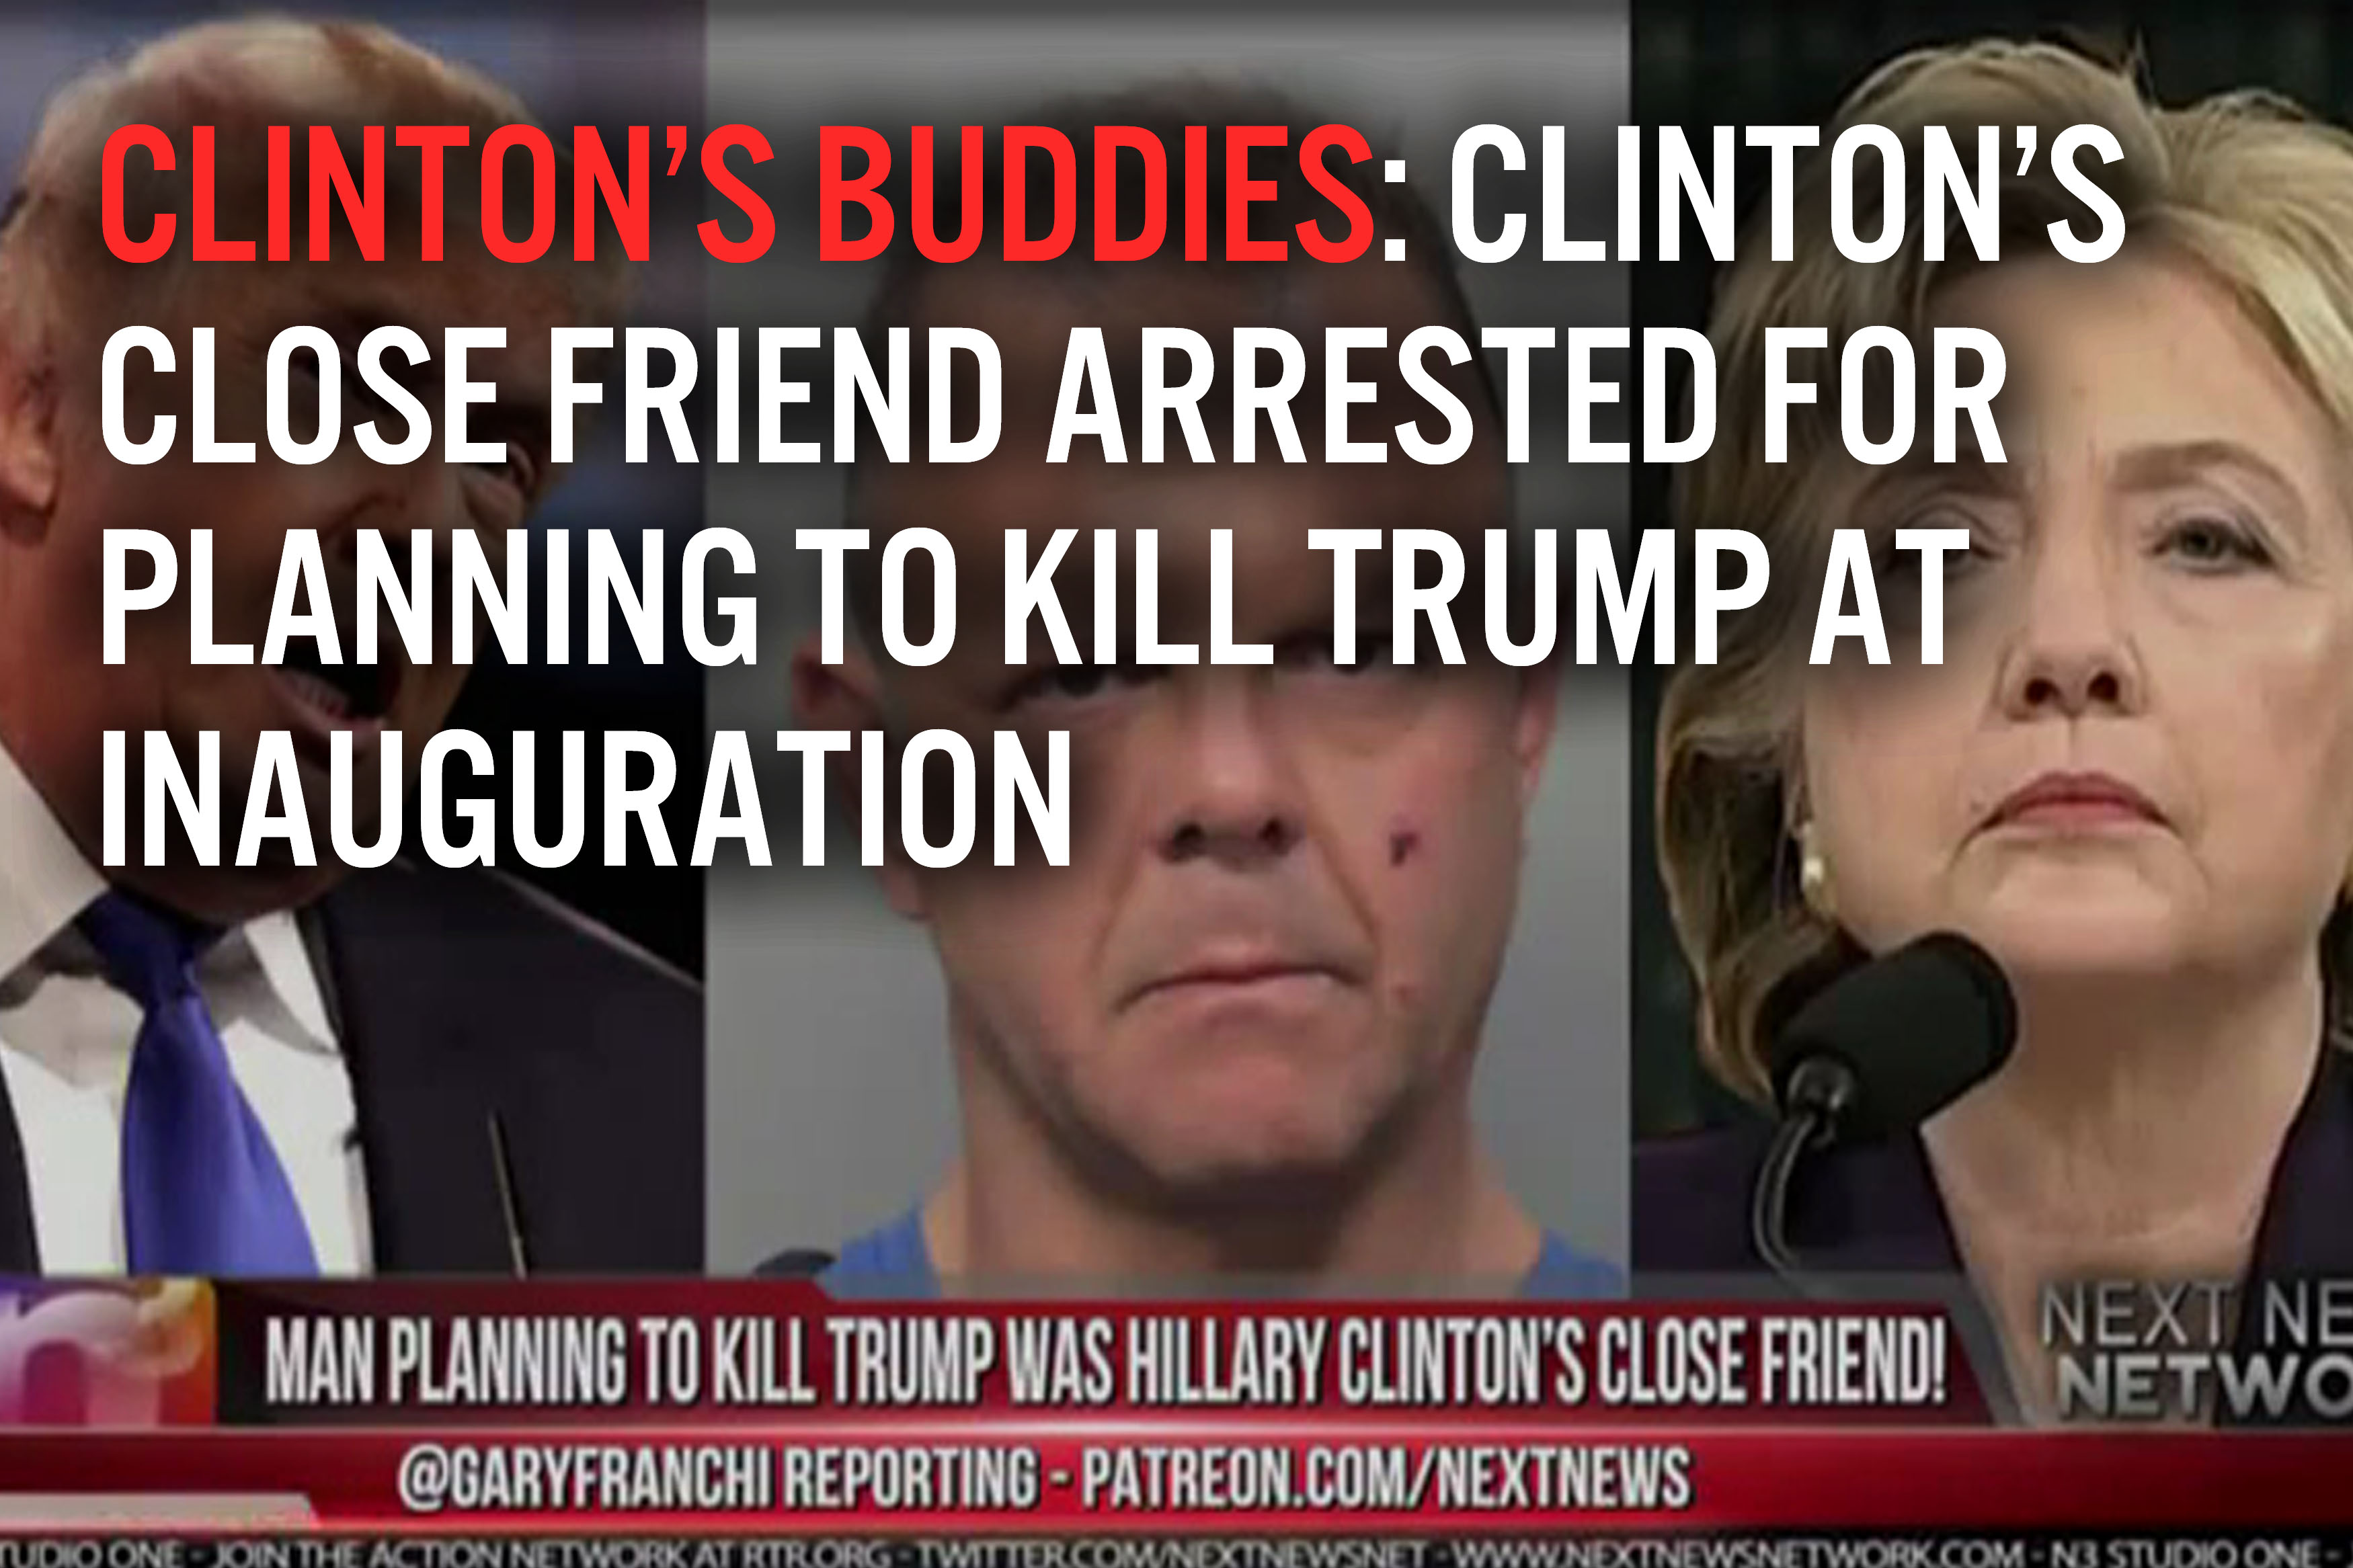 Clintons Buddies